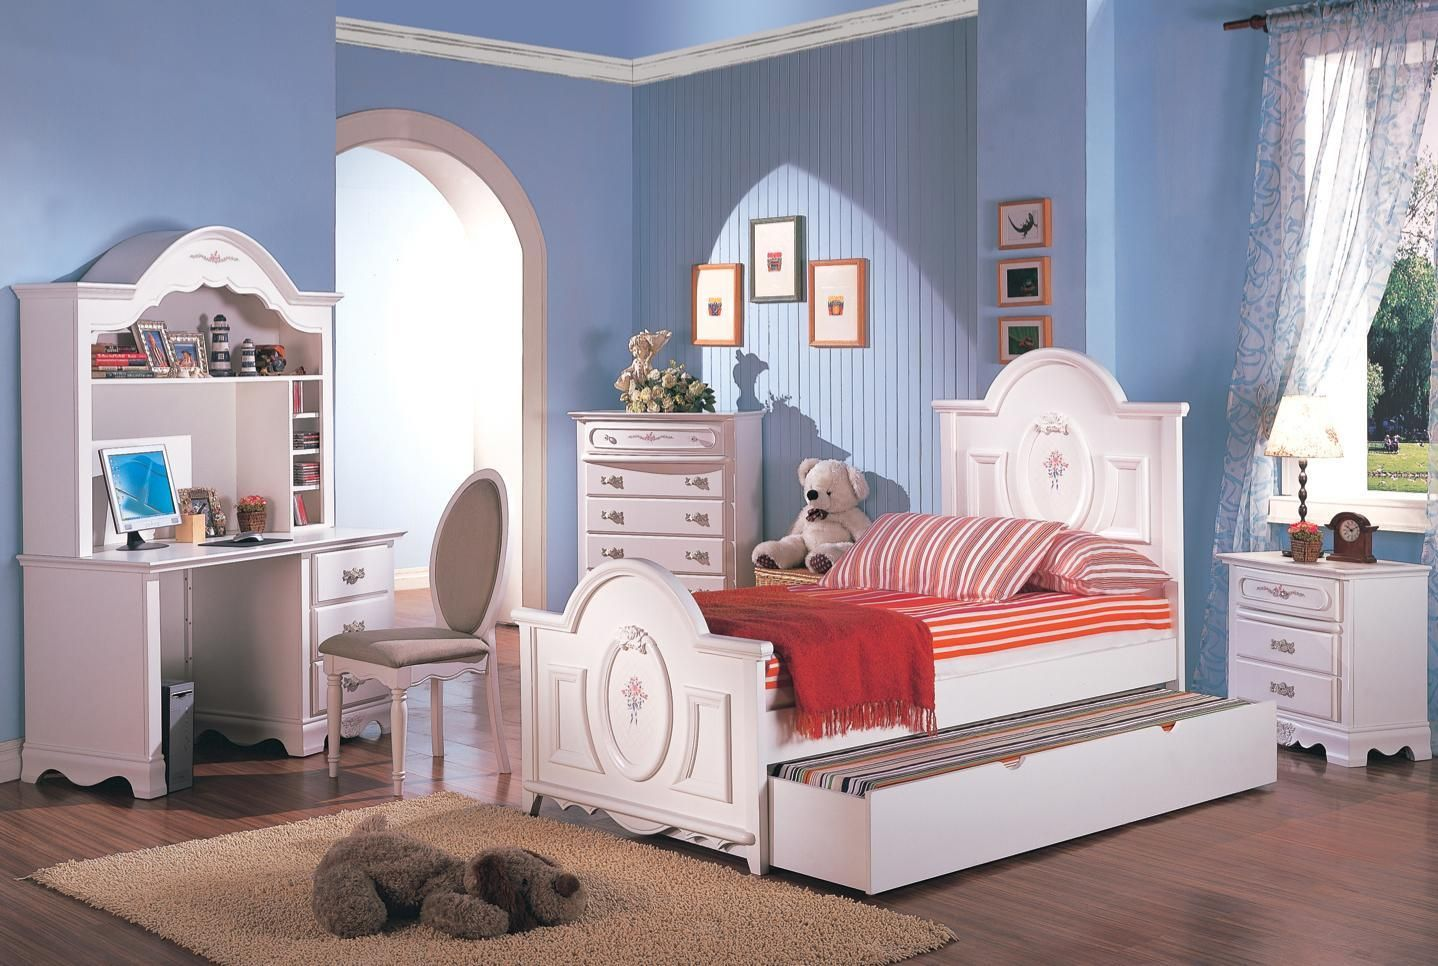 Teen Girl Bedroom Ideas   Google Search